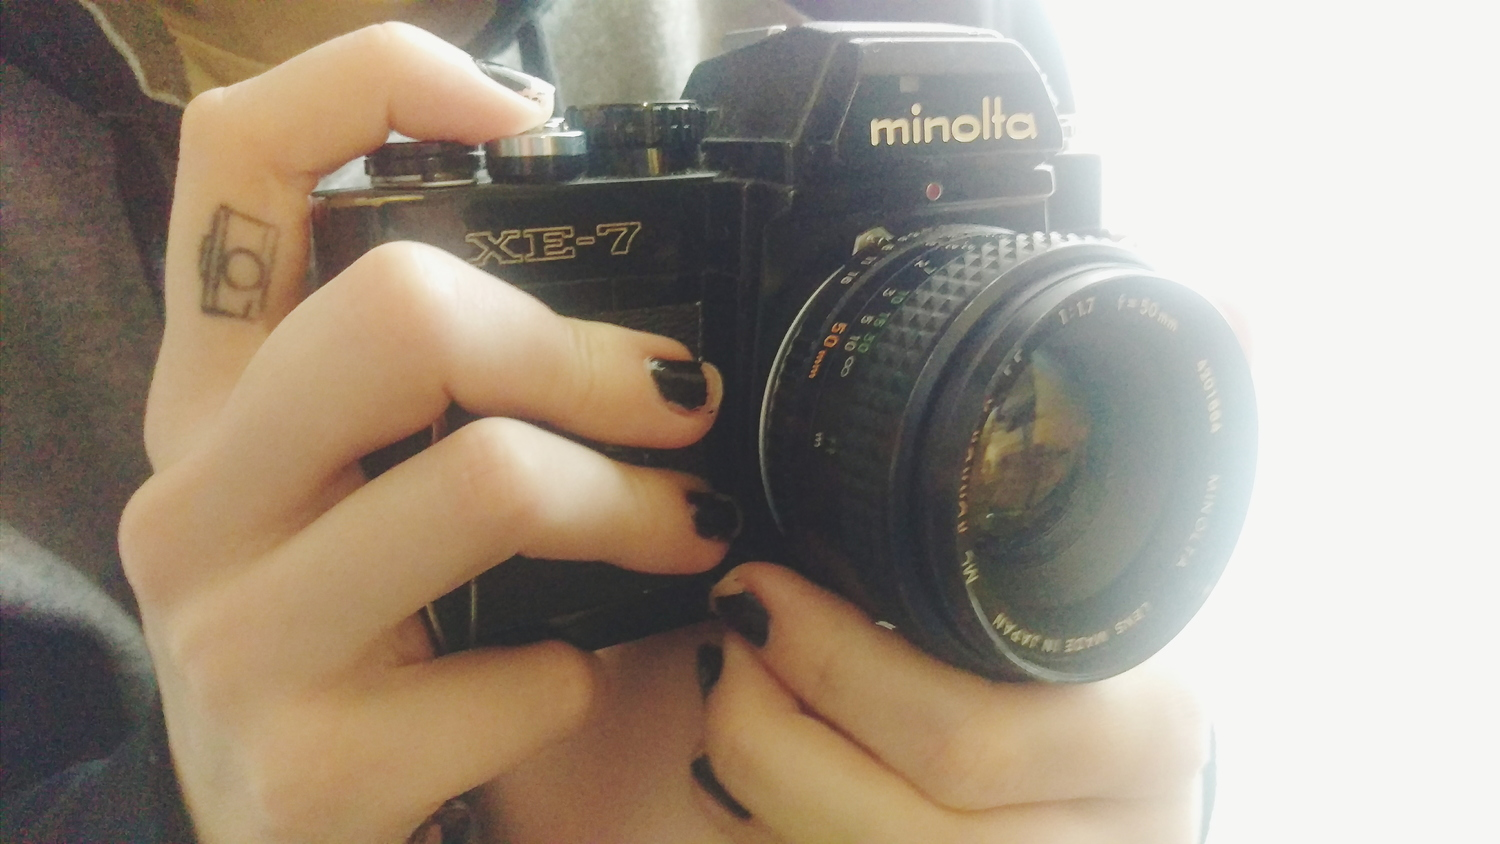 10. I first learned the ways of manual mode on my Grandpa's old 35mm Minolta. I LOVE this camera and still shoot it all the time.